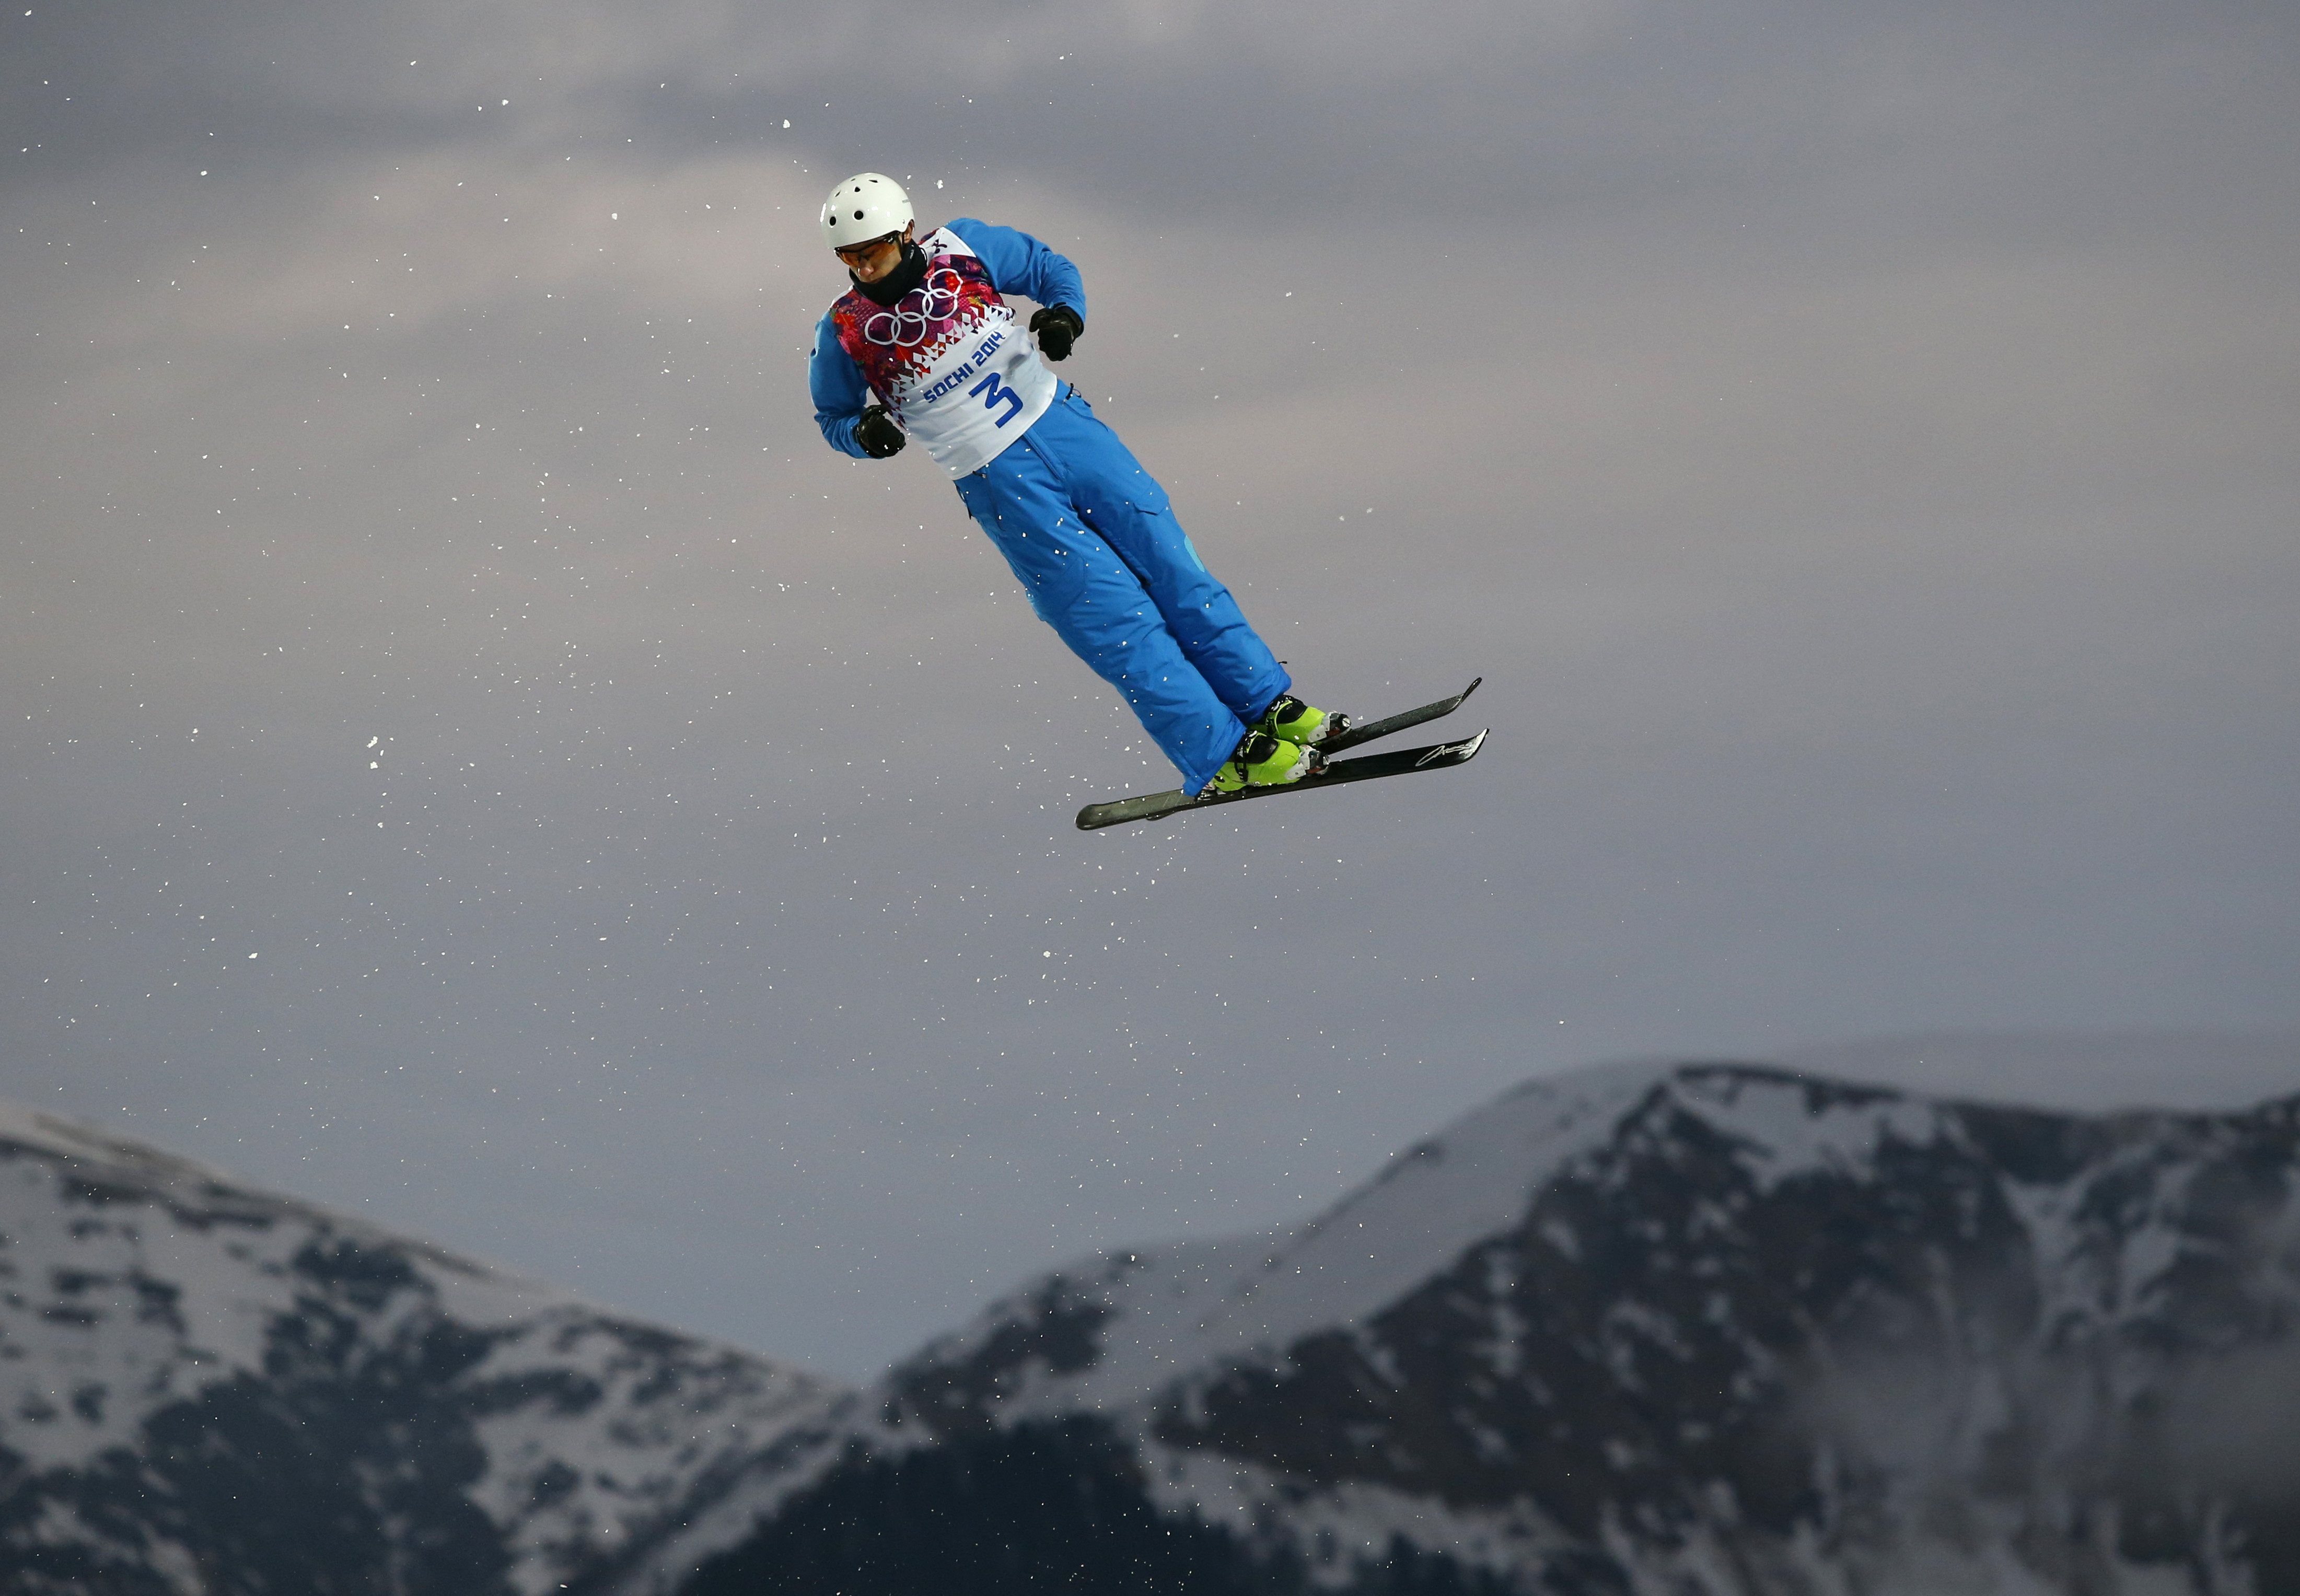 Anton Kushnir of Belarus jumps during men's freestyle skiing aerials qualifying at the Rosa Khutor Extreme Park, at the 2014 Winter Olympics, Monday, Feb. 17, 2014, in Krasnaya Polyana, Russia.(AP Photo/Sergei Grits)